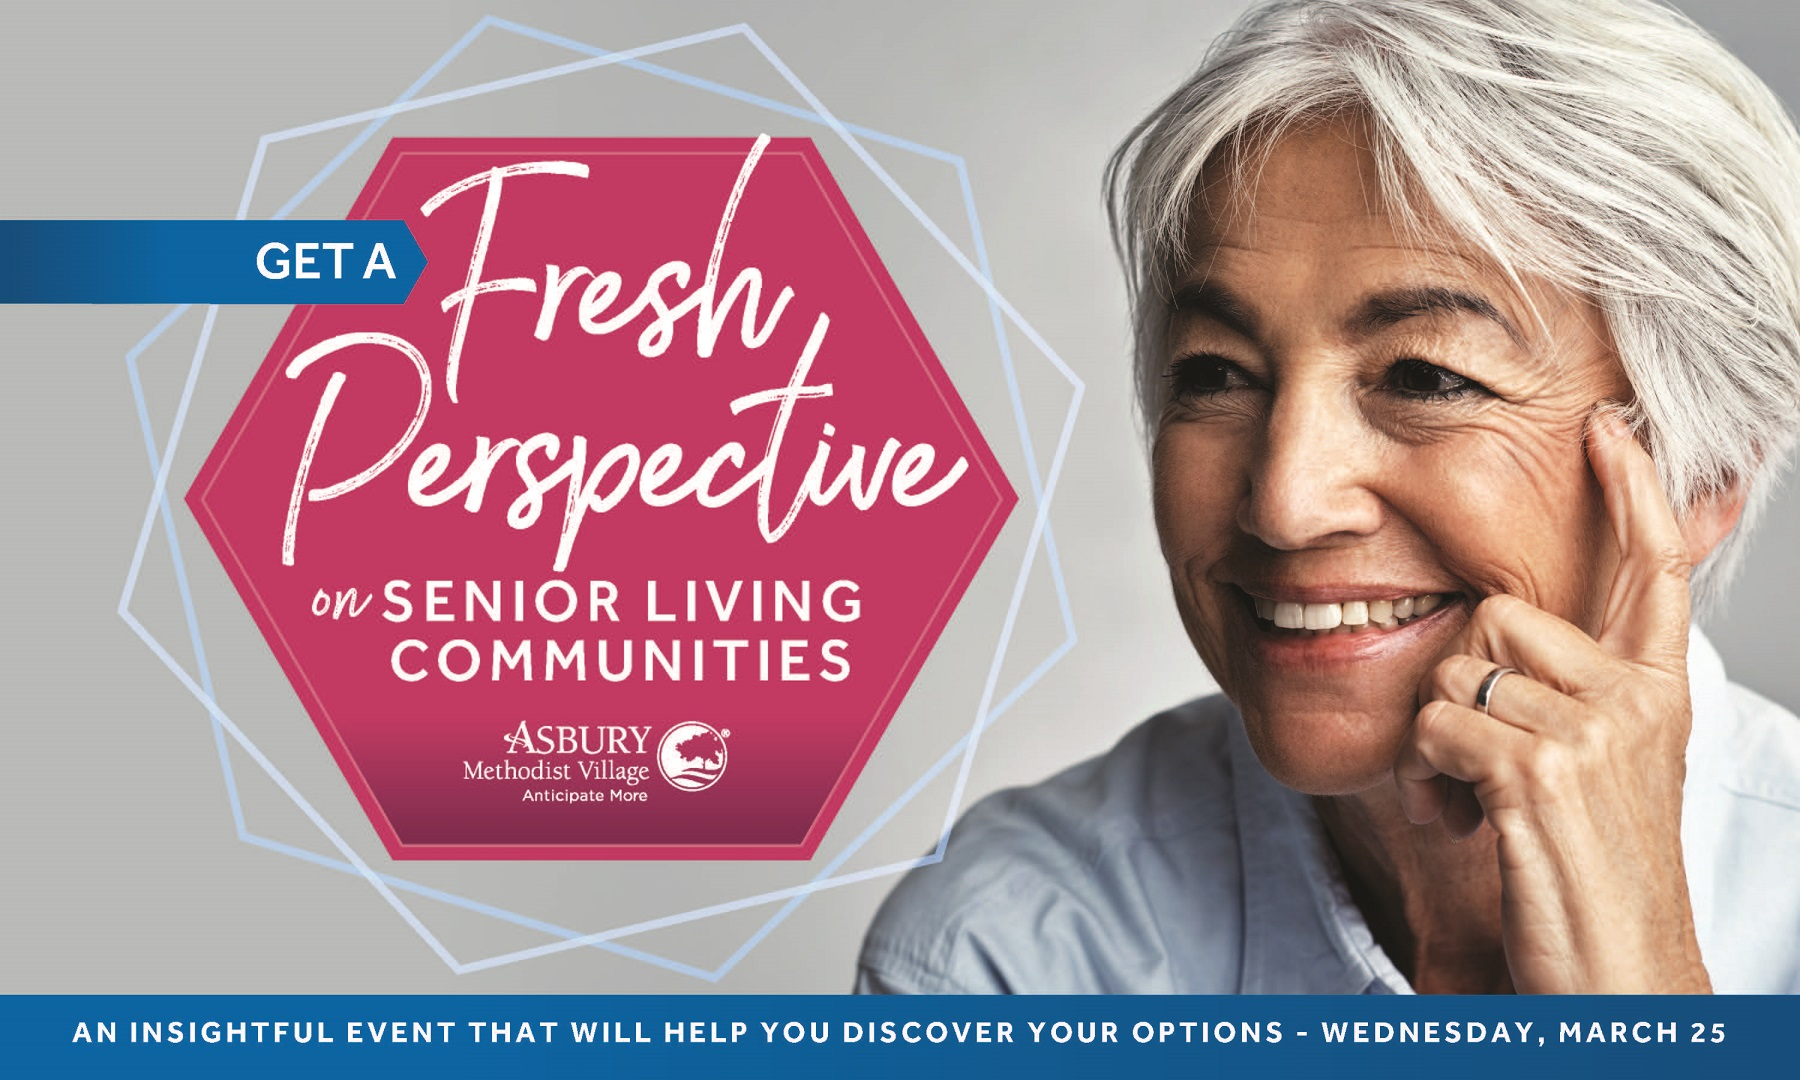 Fresh perspective event